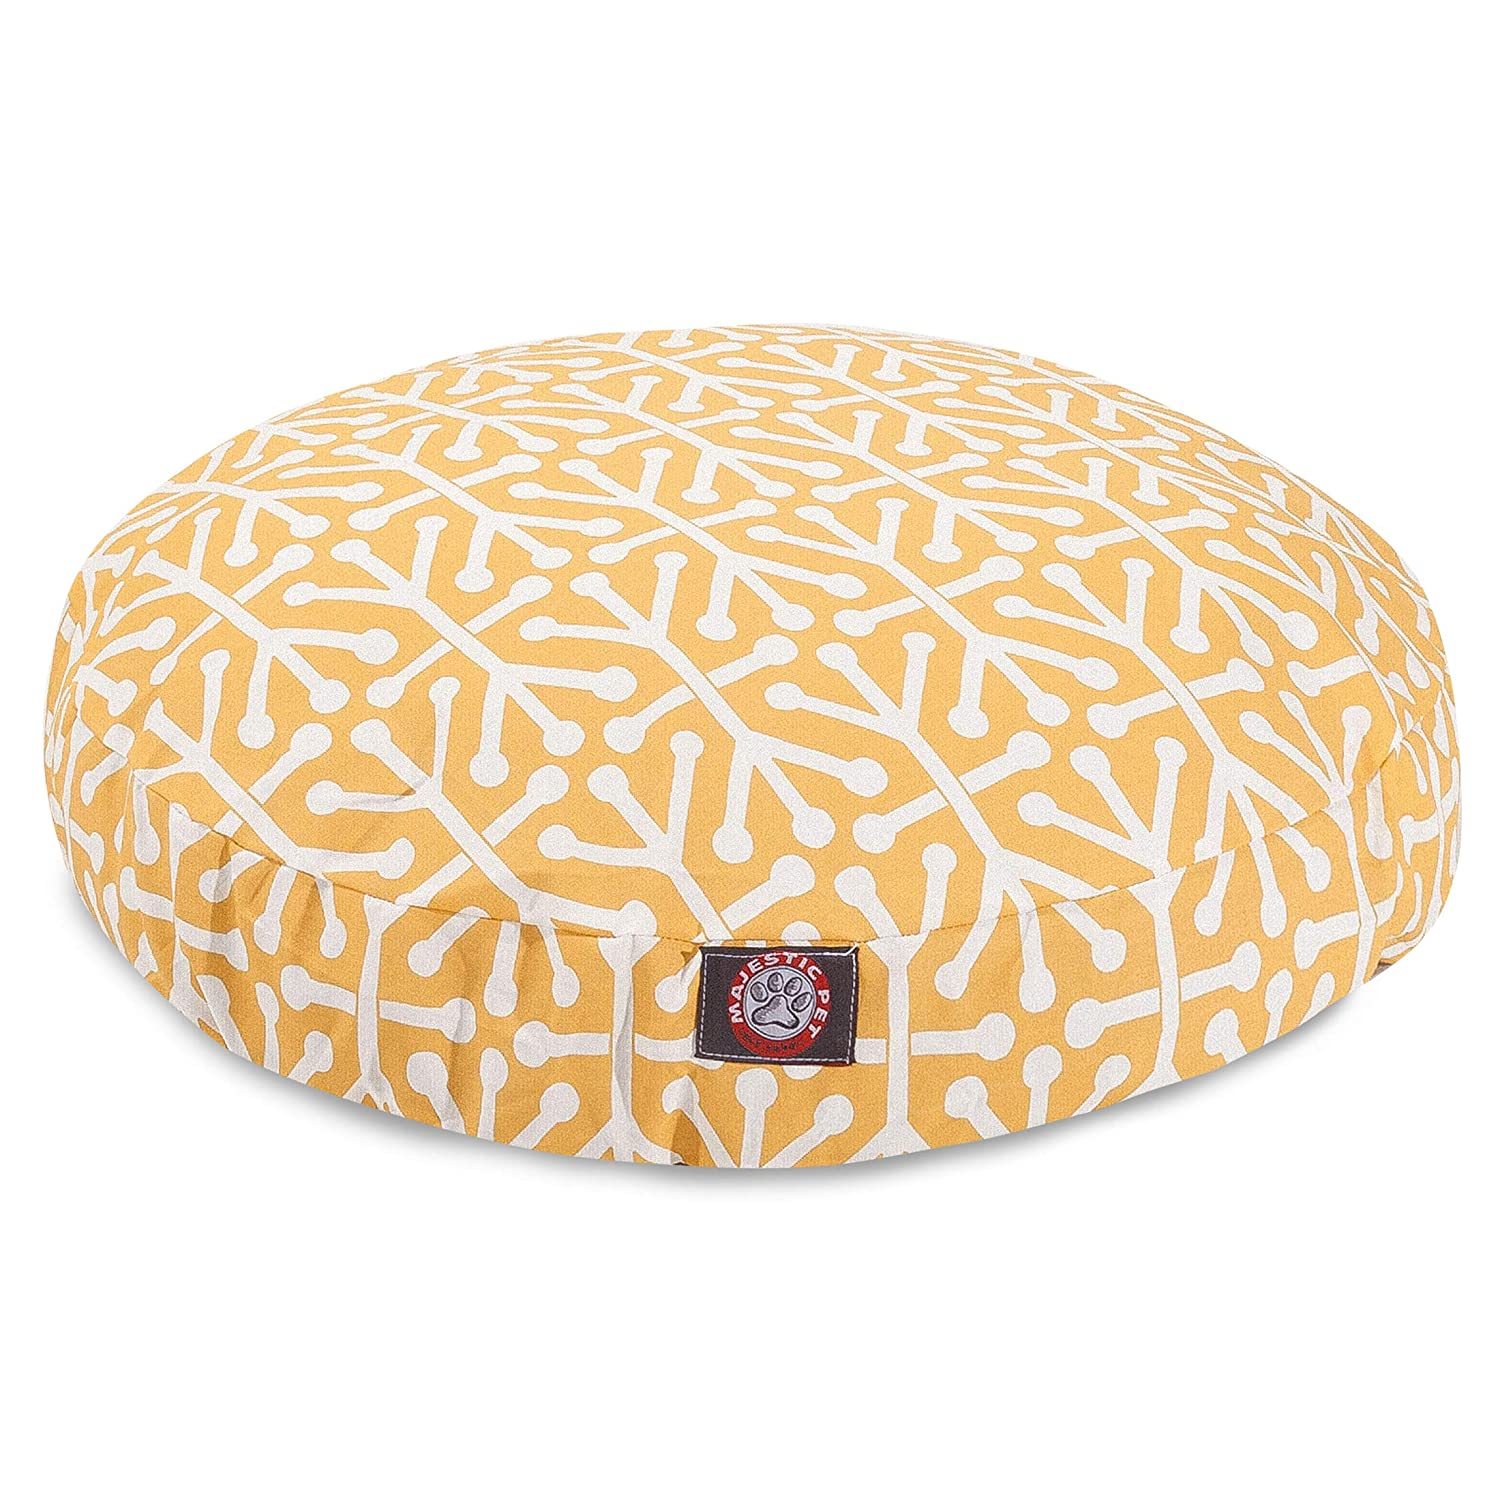 Citrus Aruba Medium Round Indoor Outdoor Pet Dog Bed with Removable Washable Cover by Majestic Pet Products